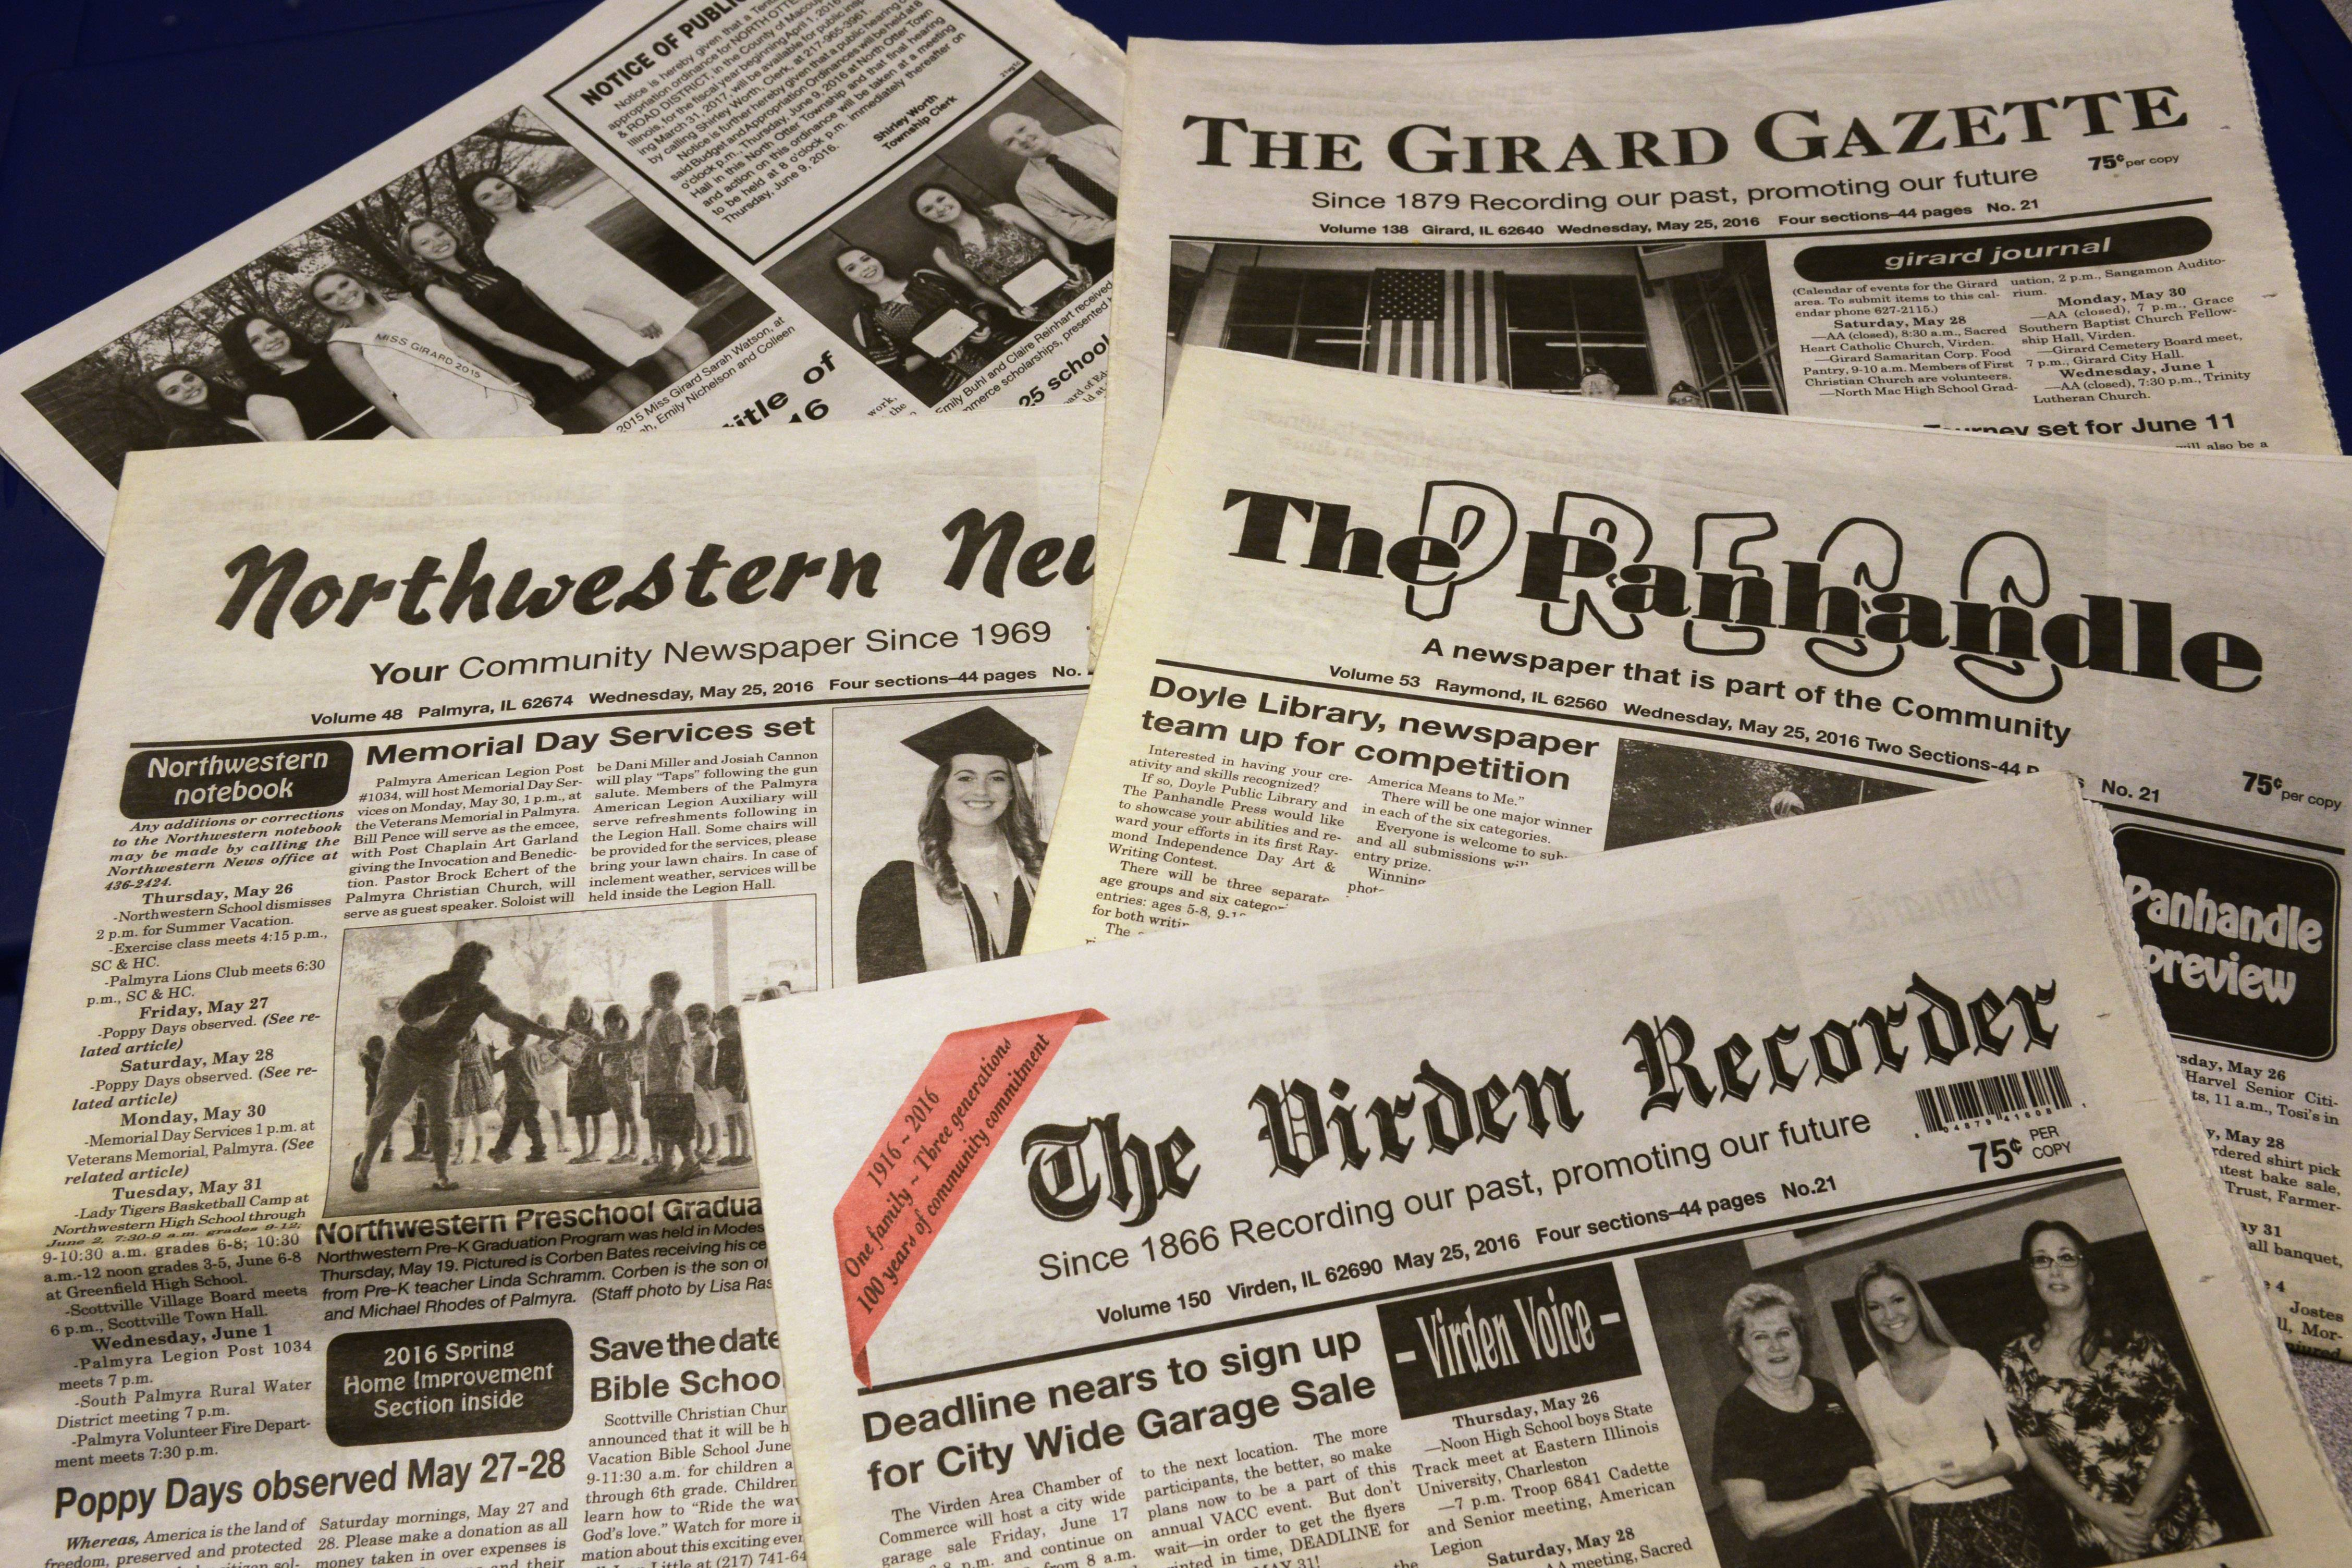 Paddock Publications to buy four newspapers in central Illinois